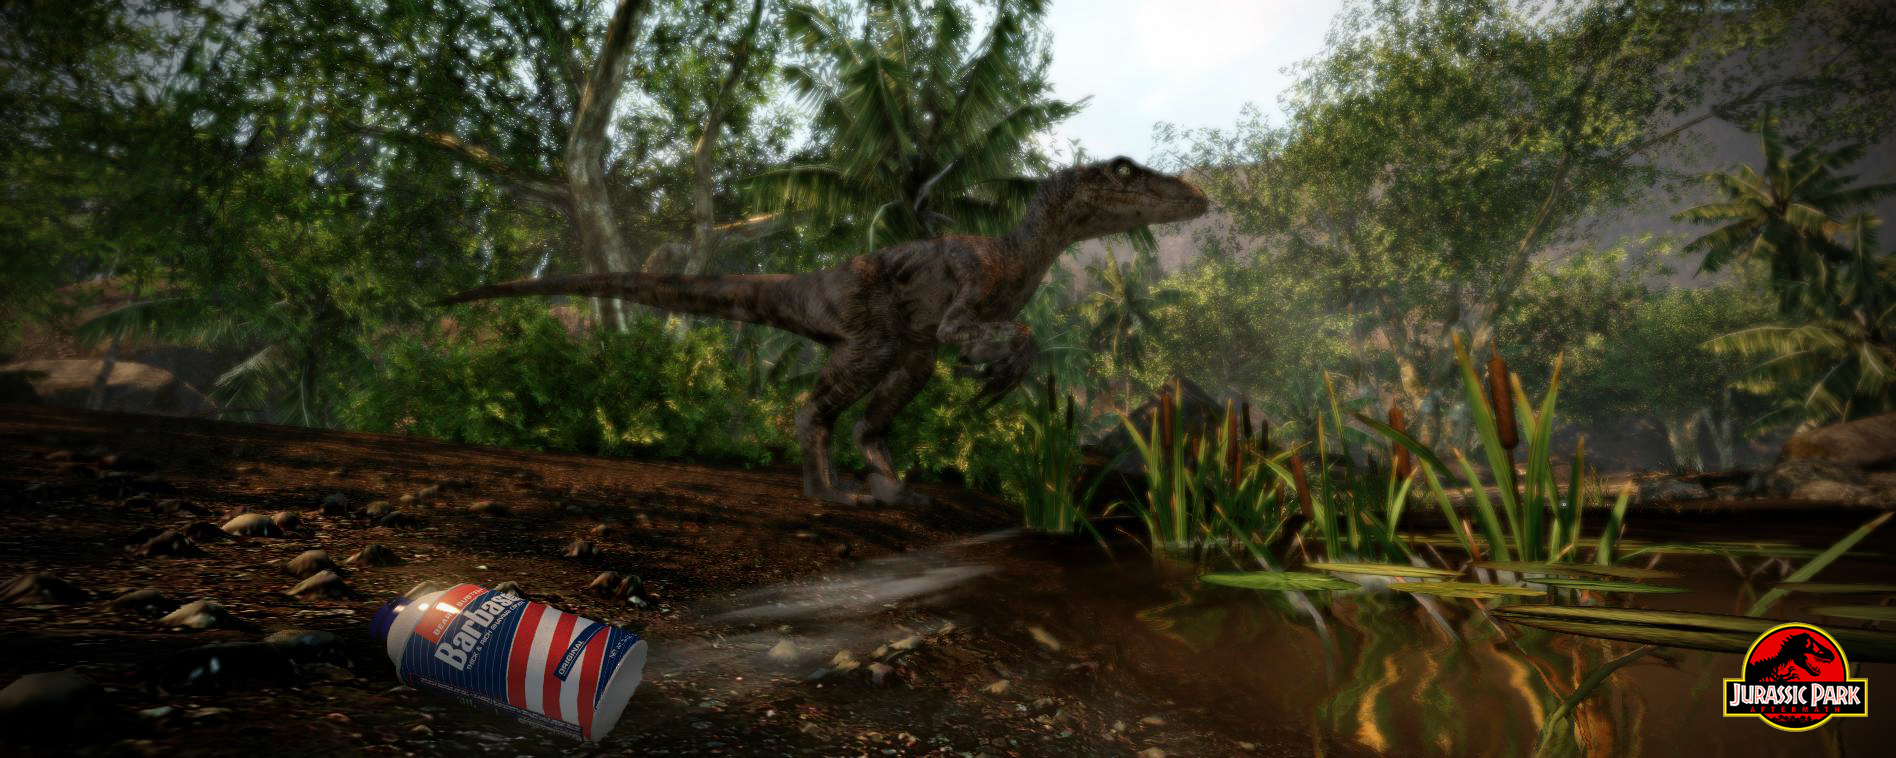 jurassic park summary report Article clean-up report blog post notifications  summary  spinosaurus  start a discussion discussions about spinosaurus (jurassic park.